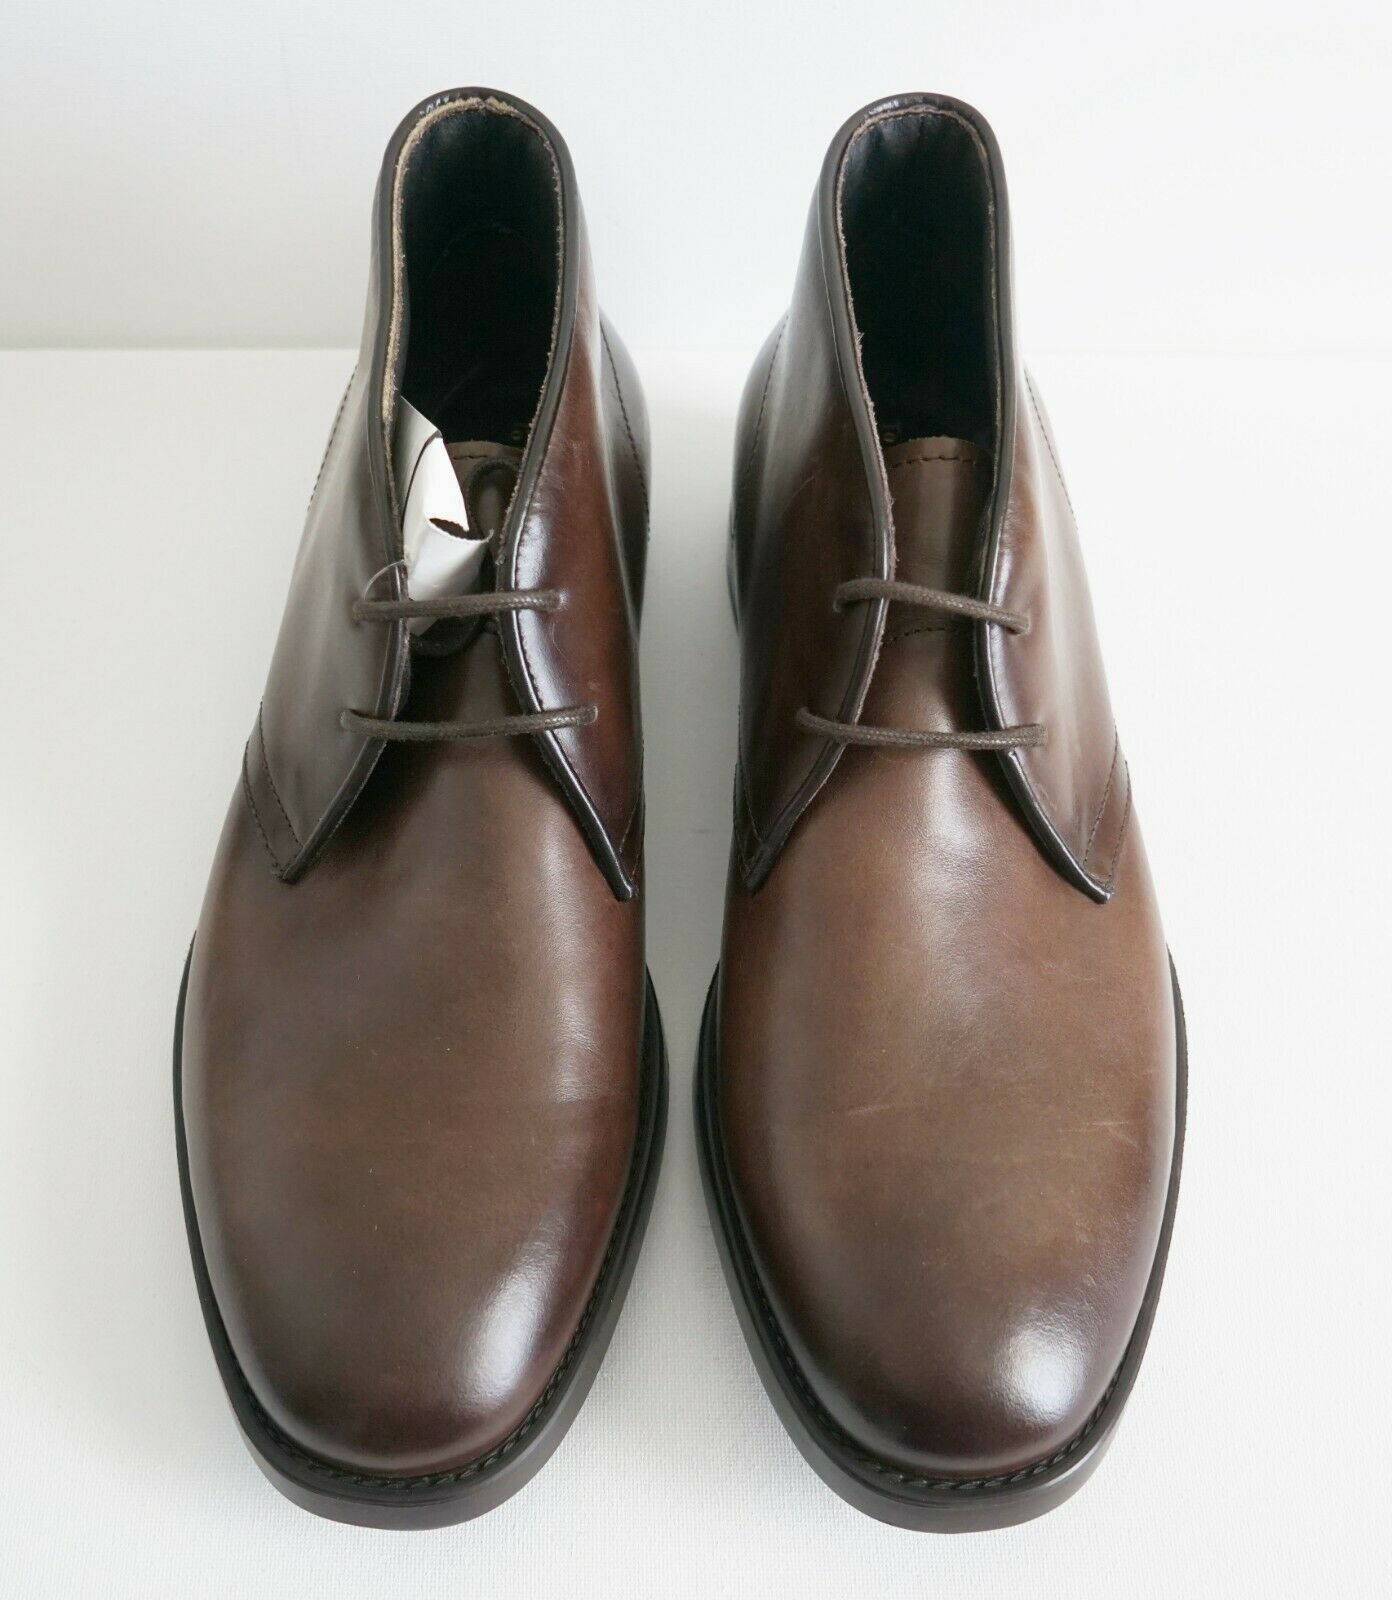 450 TO BOOT NEW YORK ADAM DERRICK Men's CONTE Leather CHUKKA Boots US-9.5M